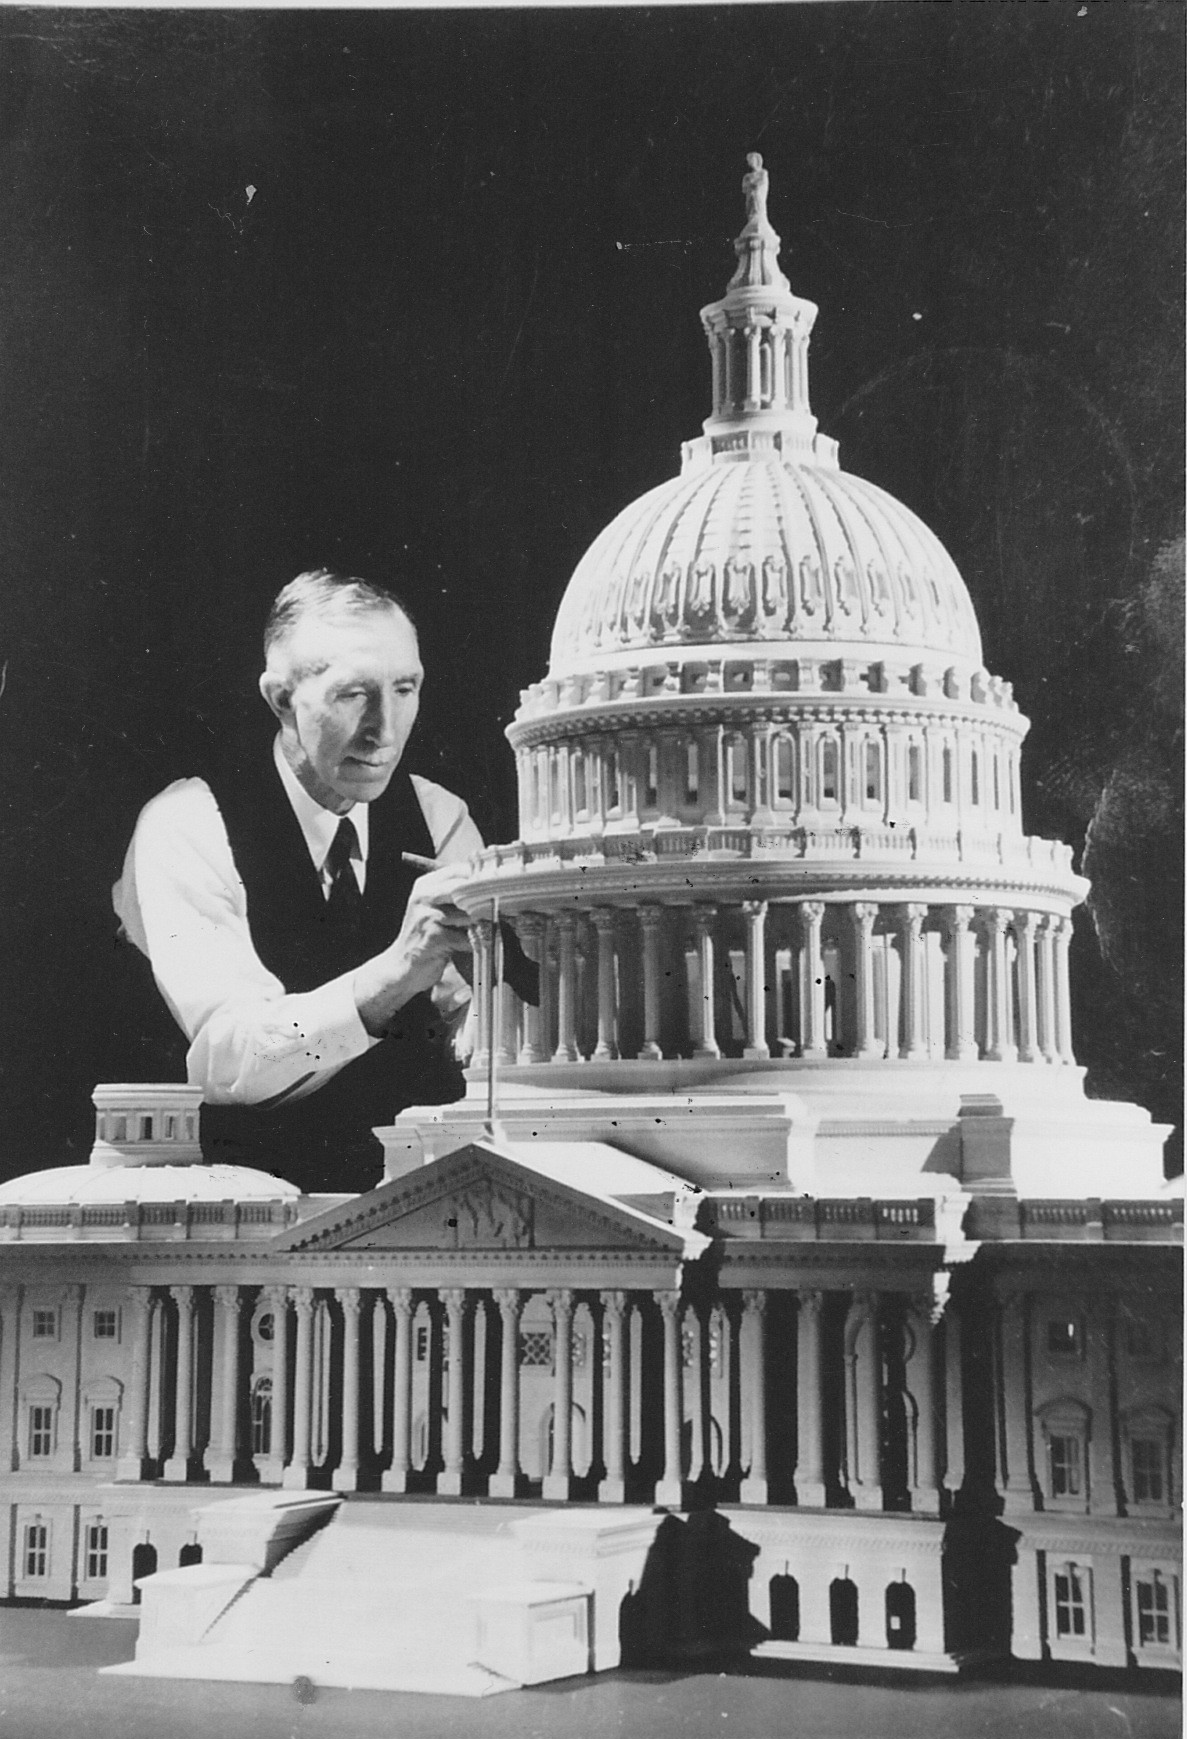 United States Capitol Model